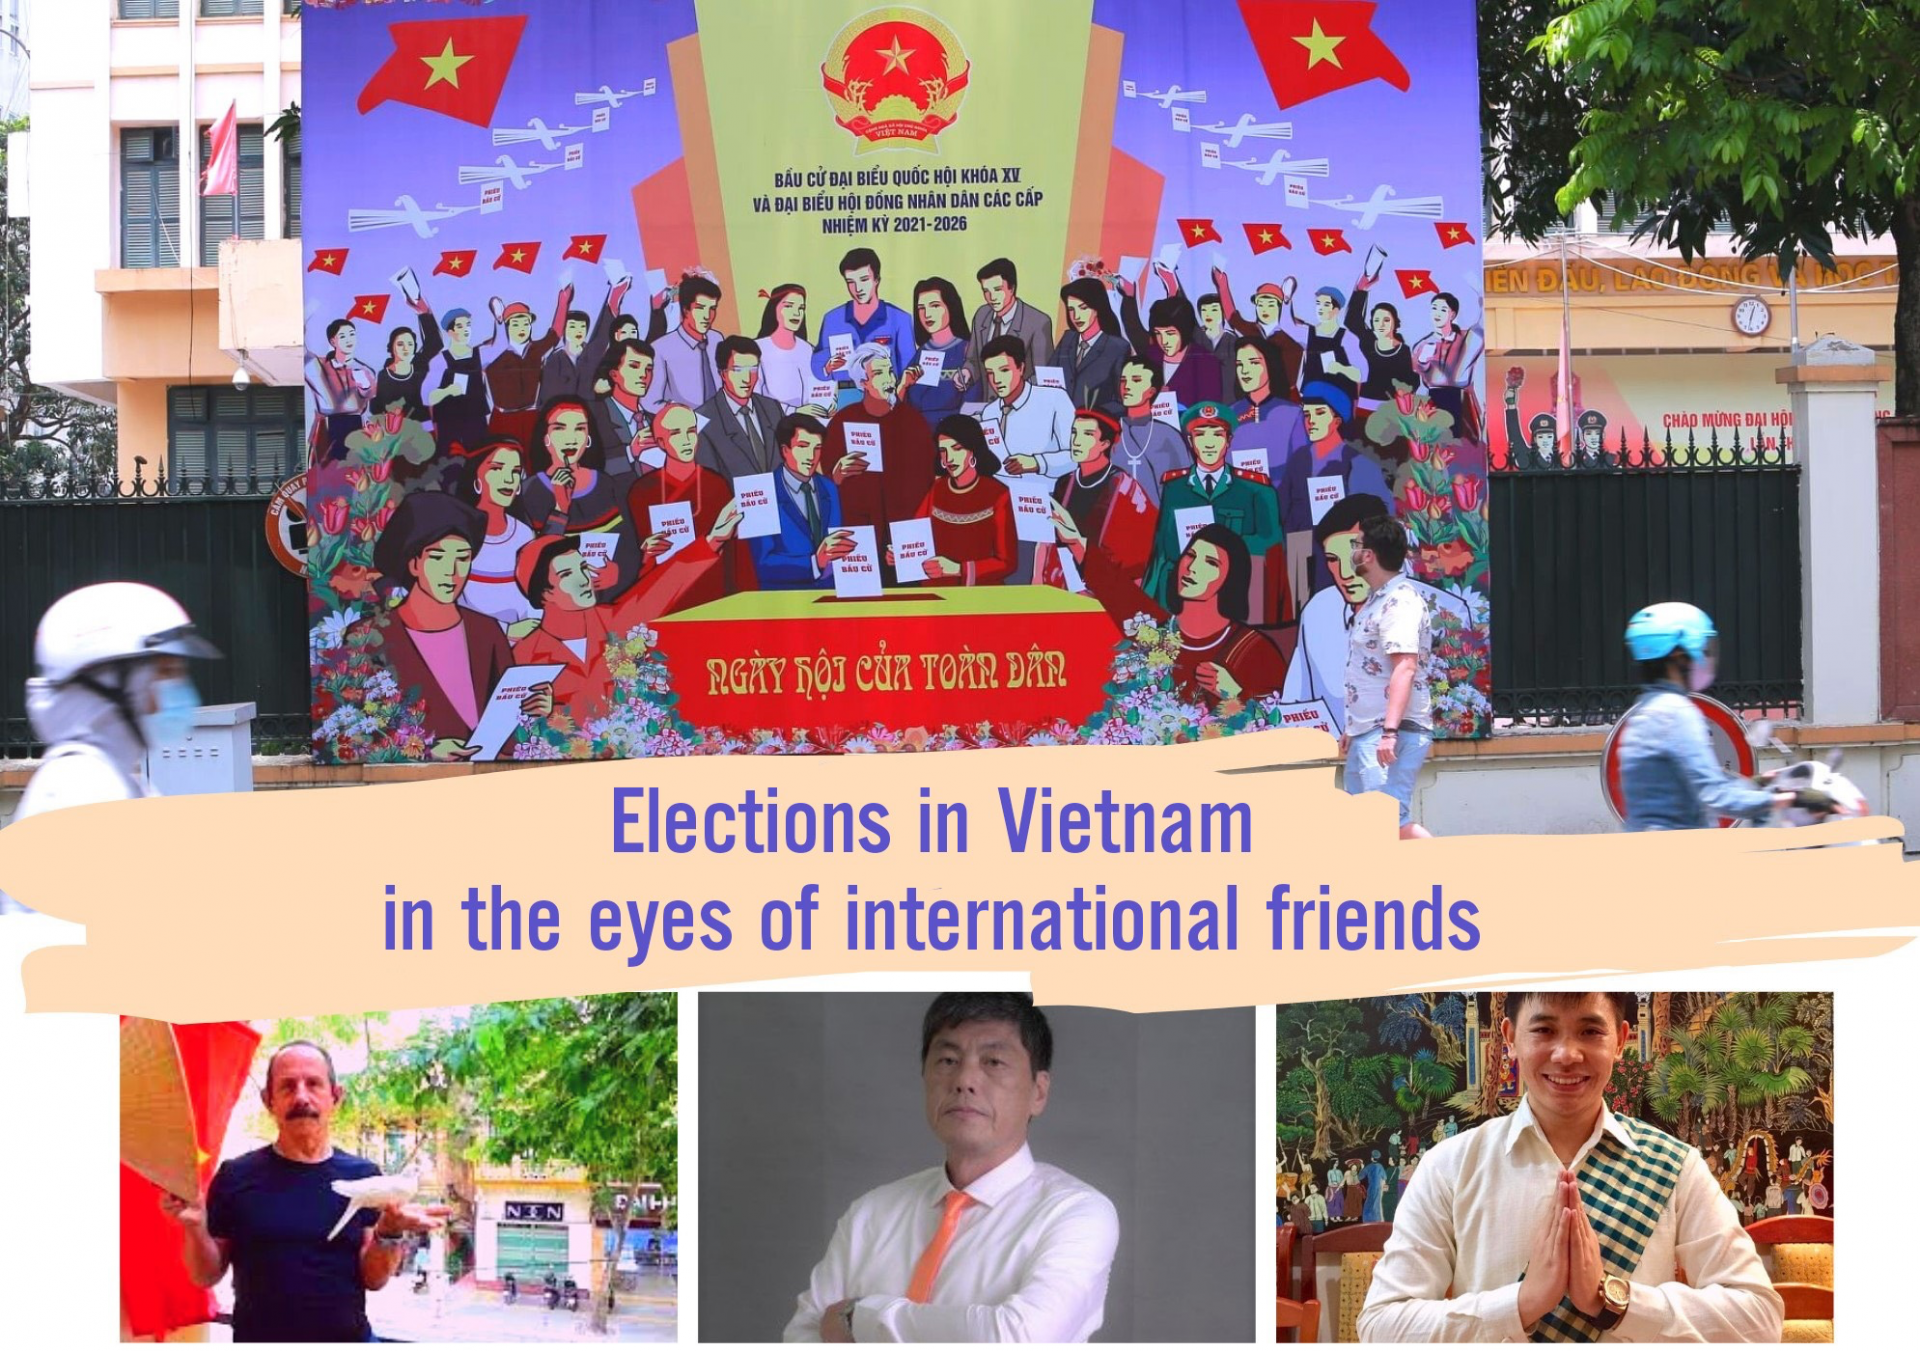 vietnams election in the eyes of international friends